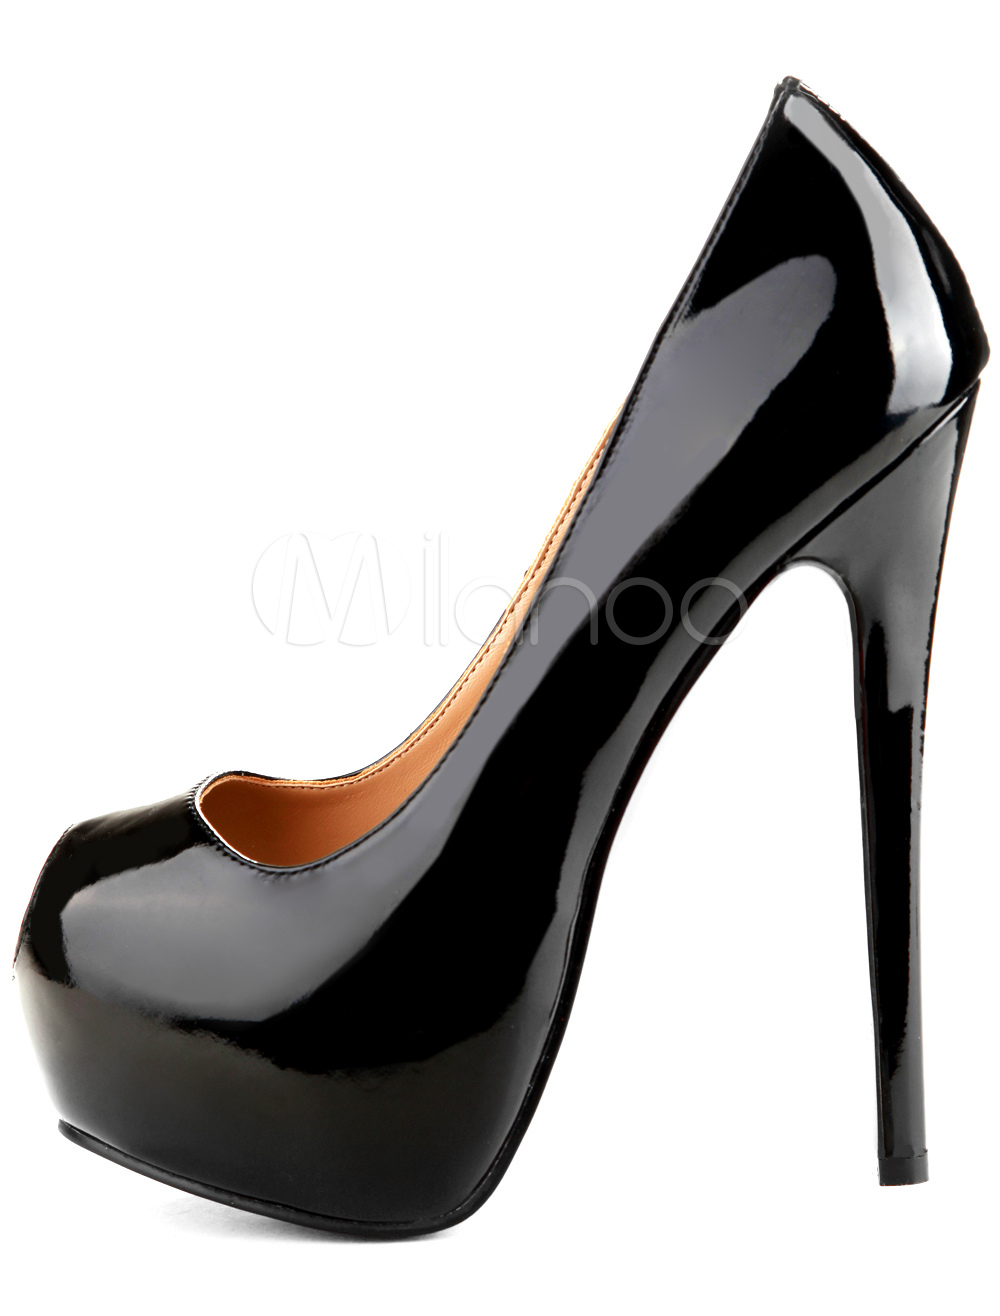 Black Peep Toe Platform High Heel Shoes - Milanoo.com